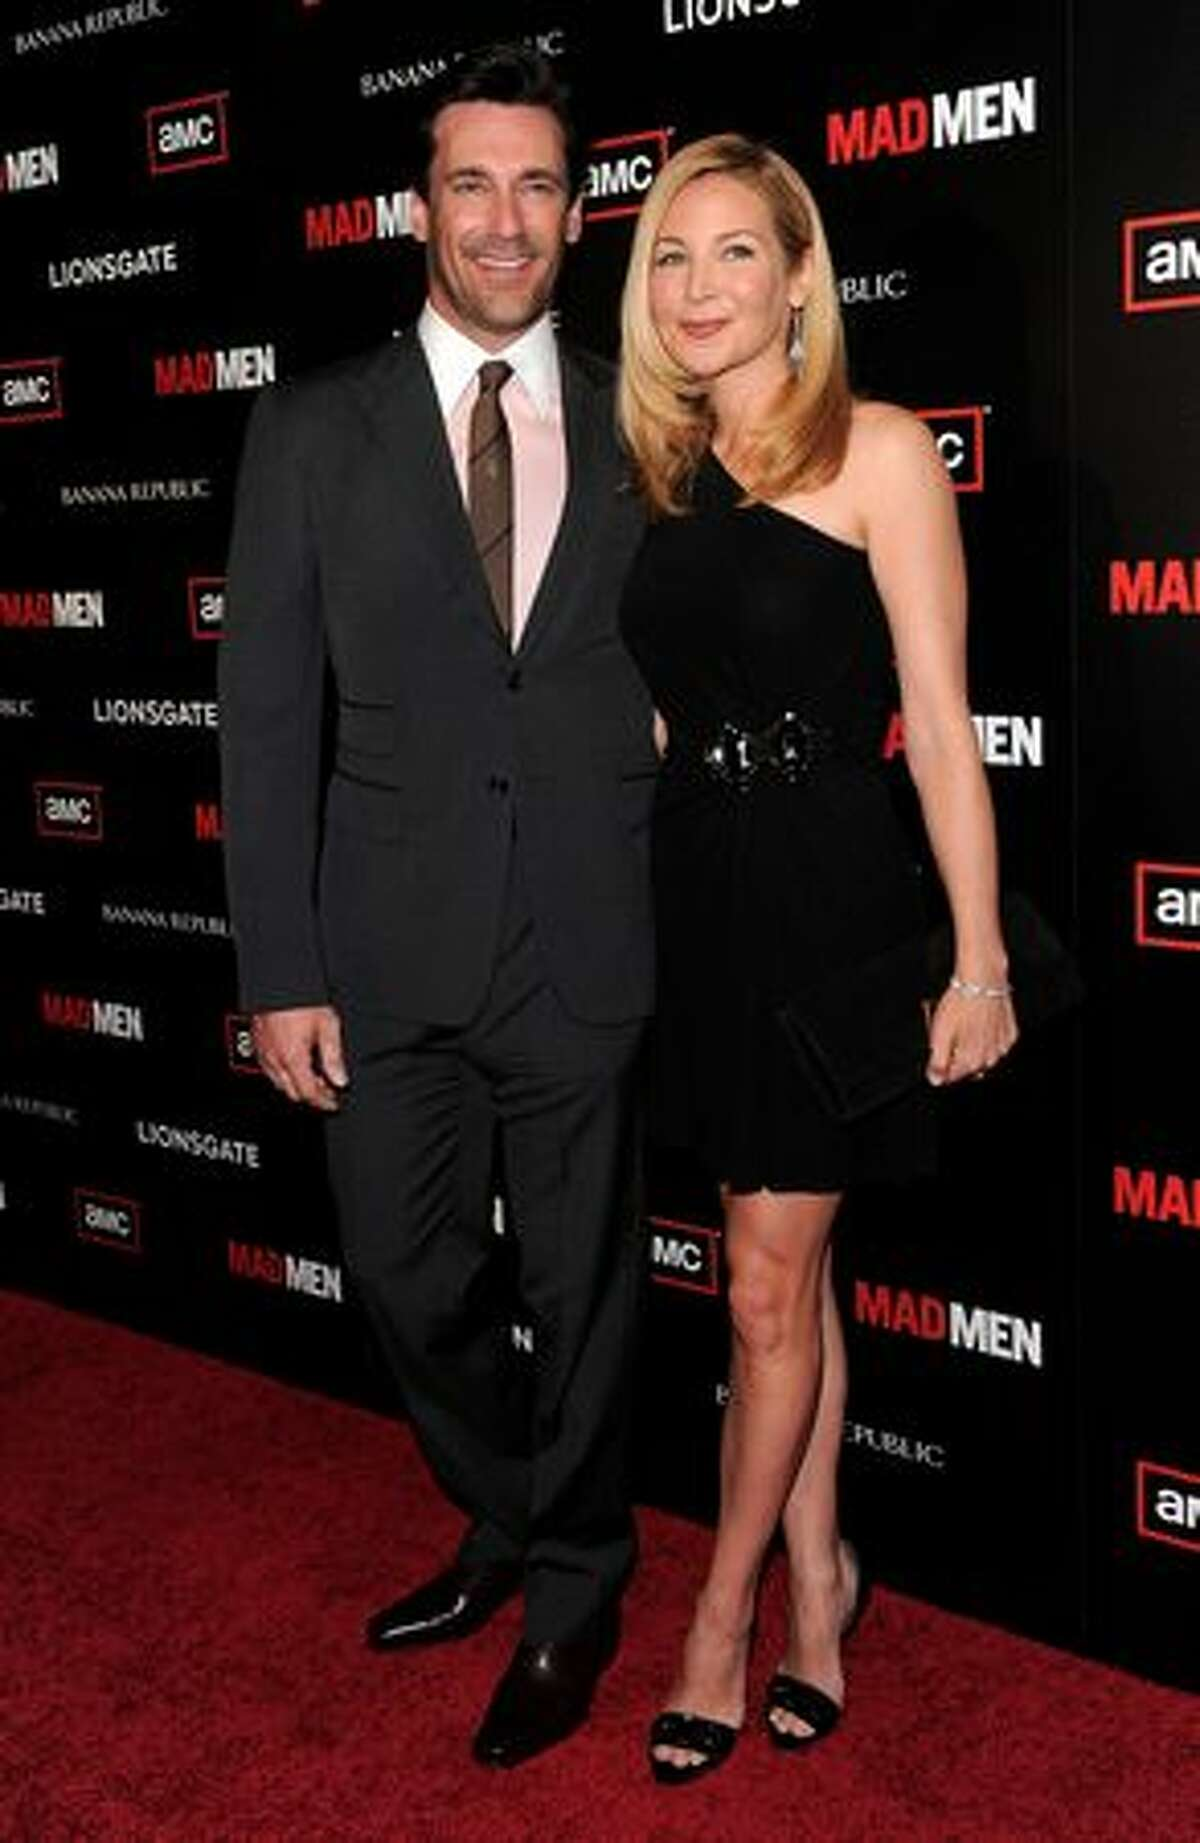 """Actor Jon Hamm, who stars as Don Draper in """"Mad Men"""", poses with his longtime girlfriend, actress Jennifer Westfeldt, at the show's season 4 premiere in Hollywood, California."""